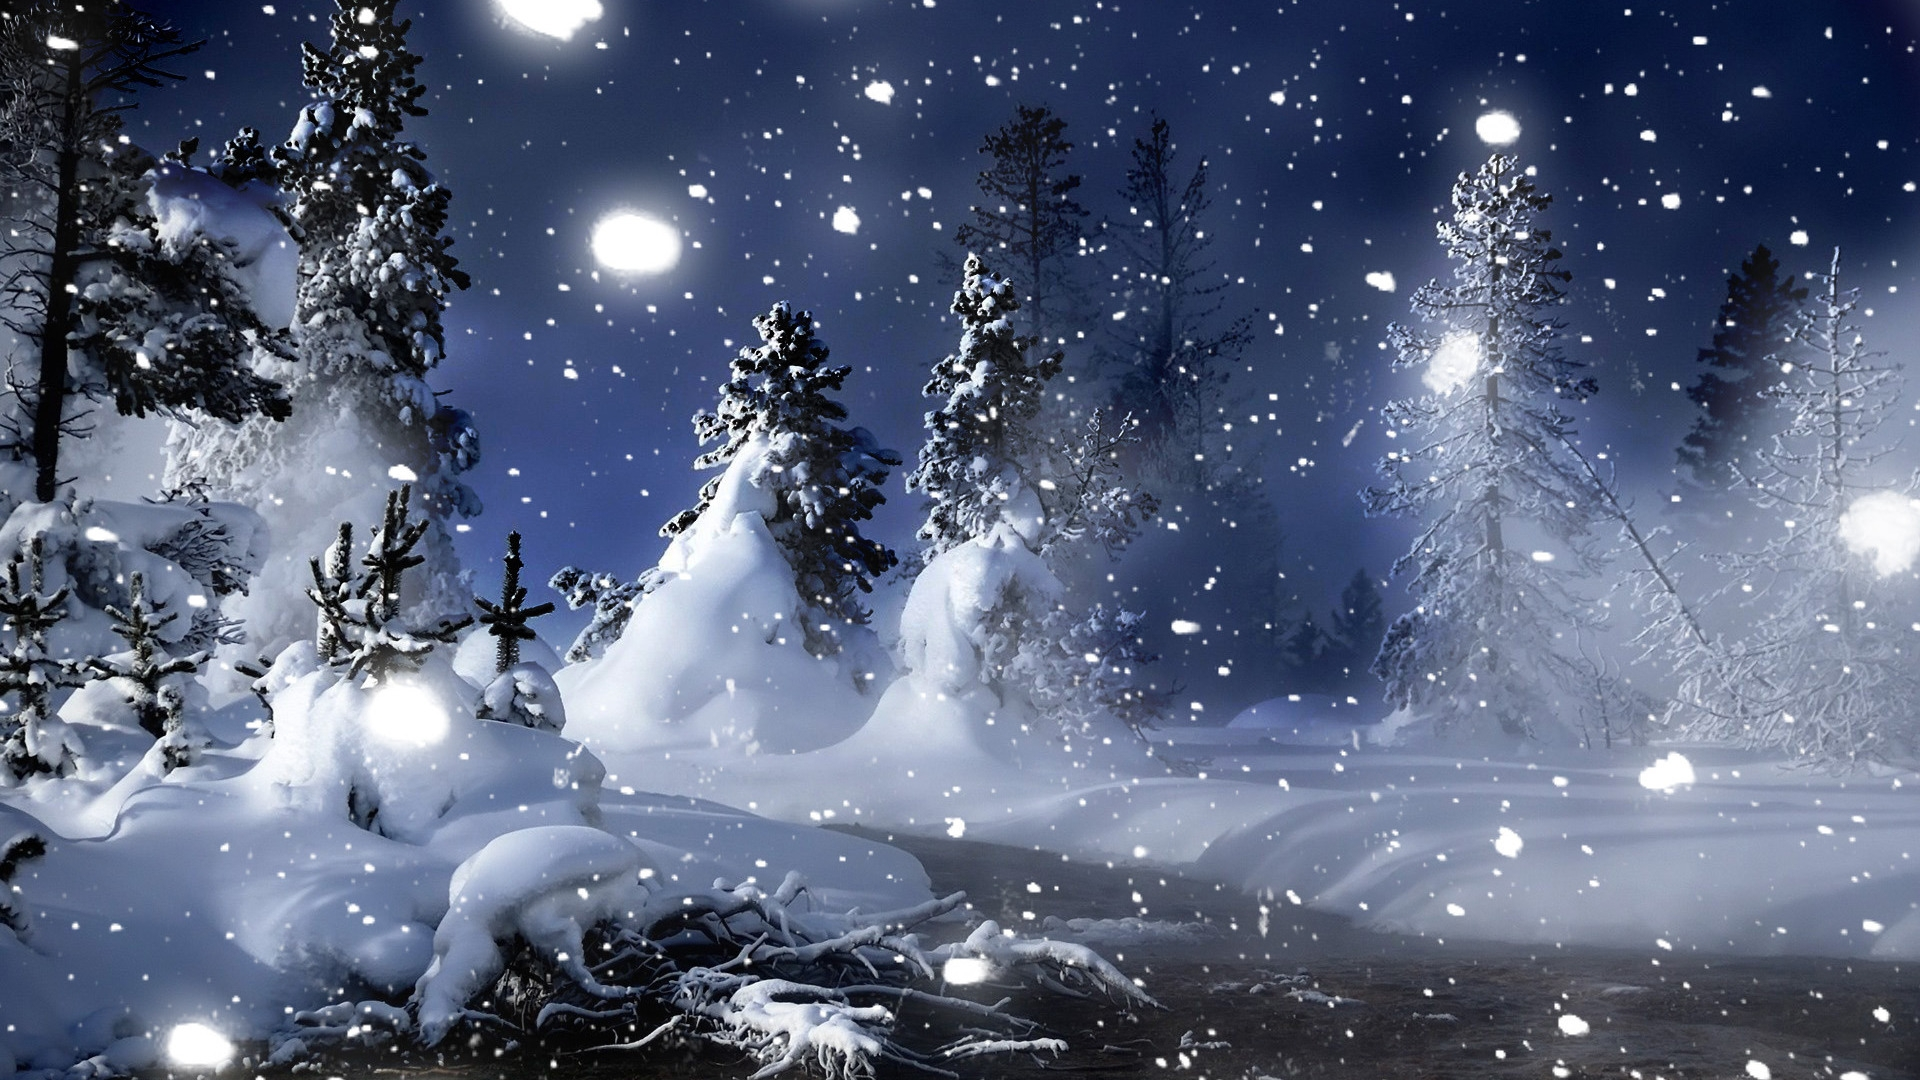 winterseasonhdwallpapersfreefordesktop hd wallpaper